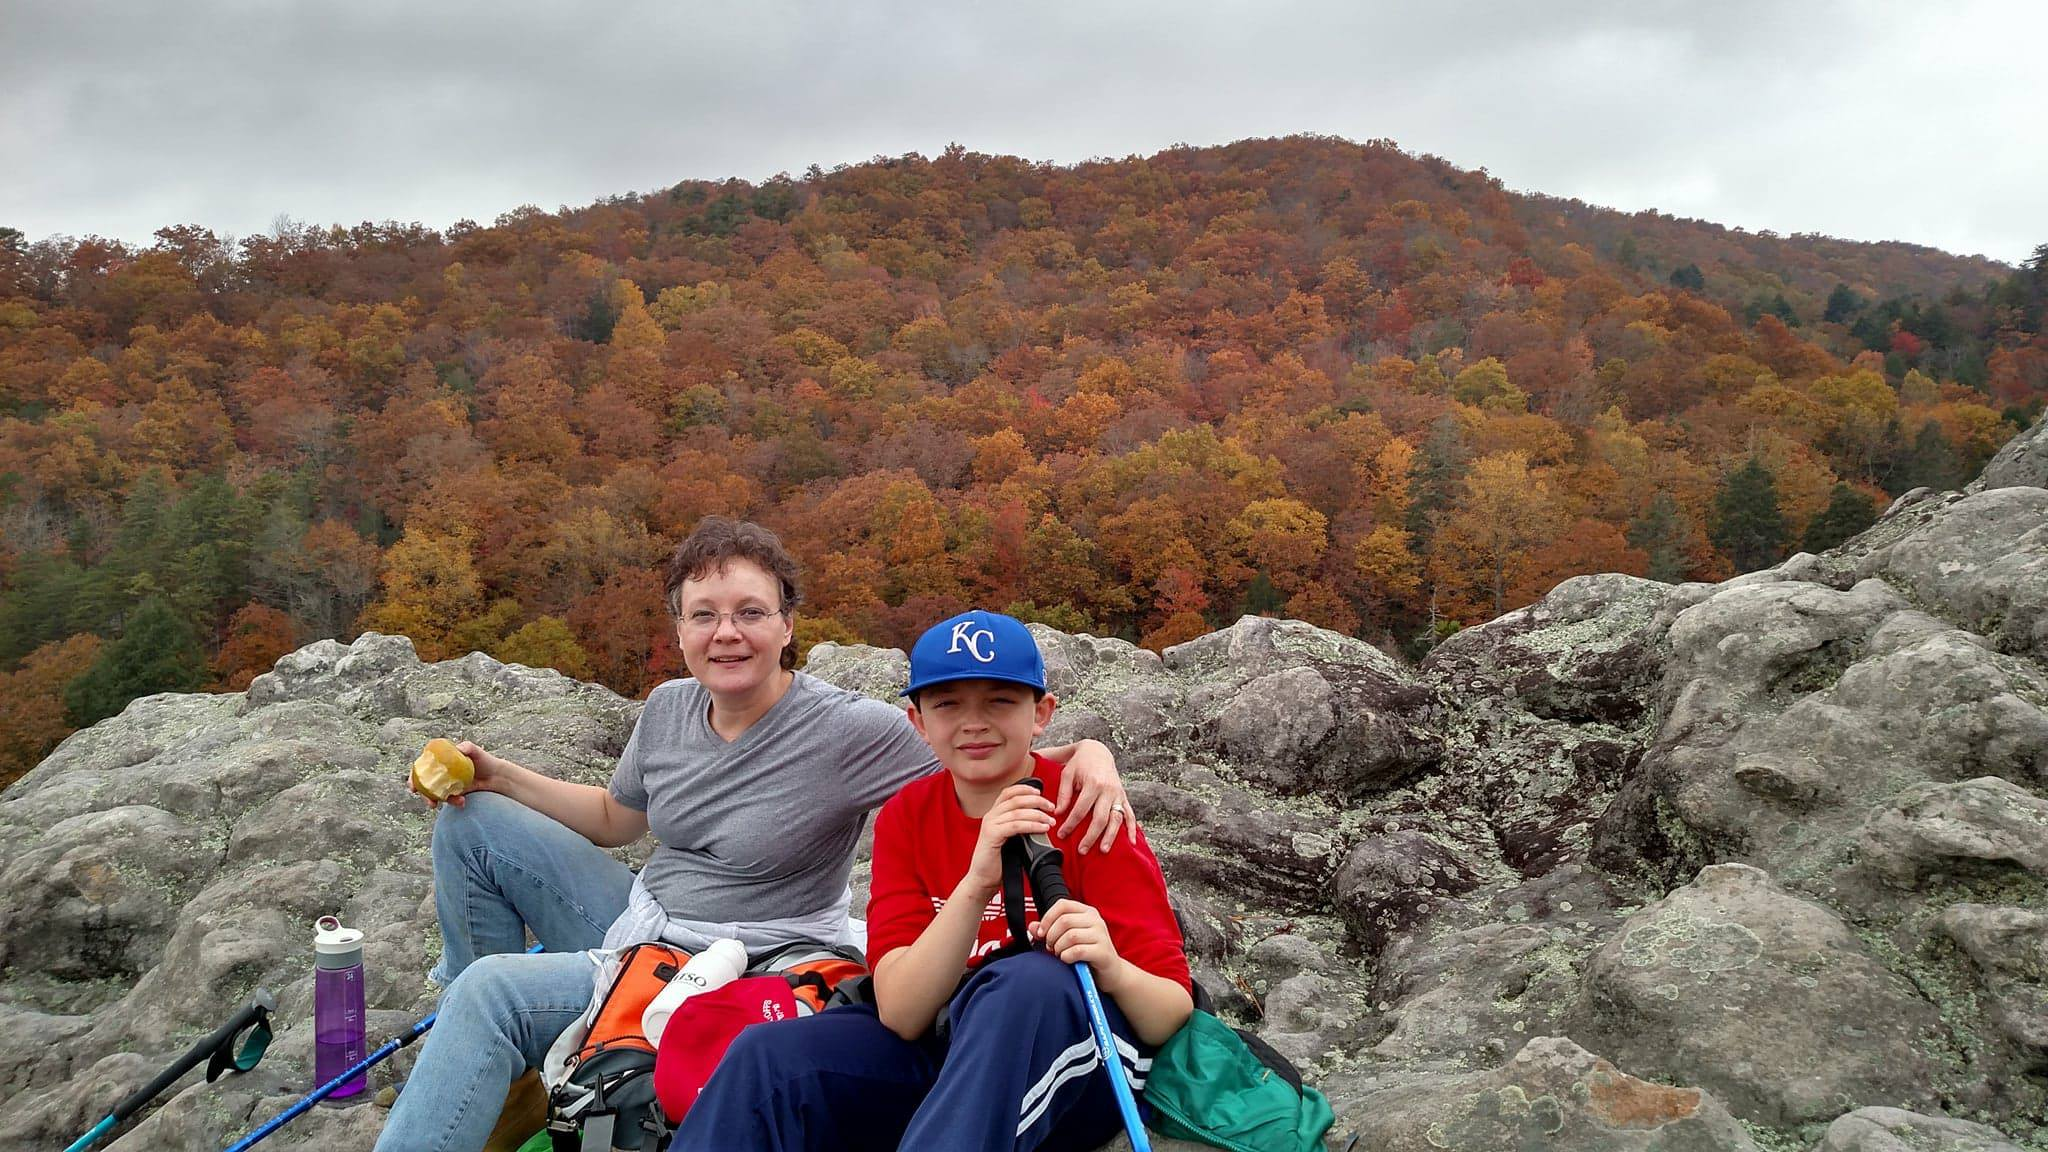 Leah Schade and son Benjamin on Knobby Rock, Blanton Forest, Ky.